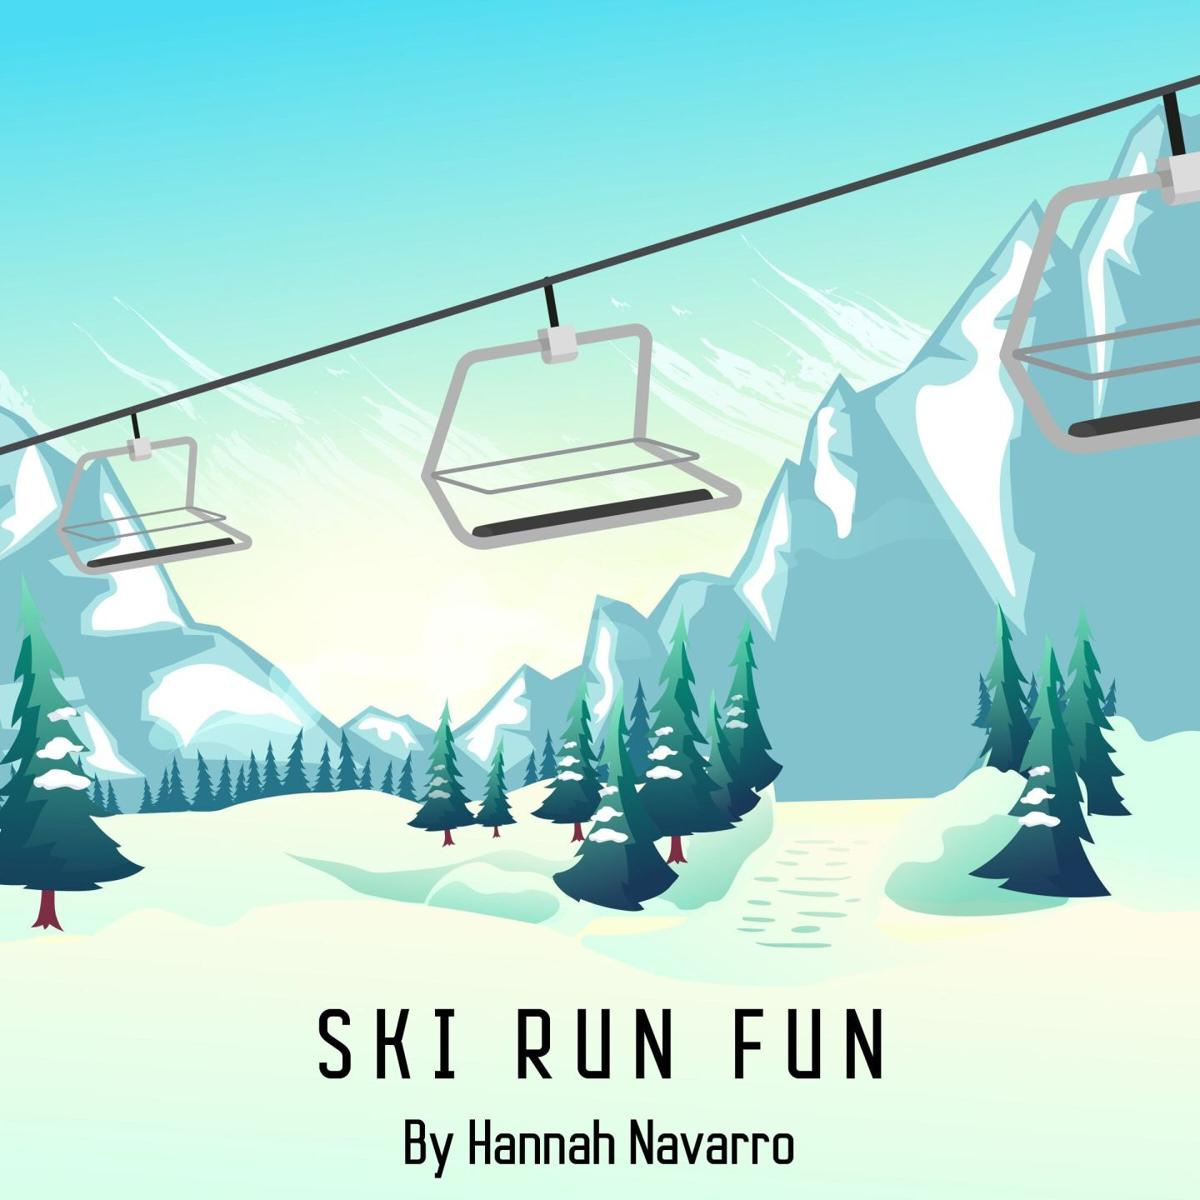 Ski Fun Run book cover